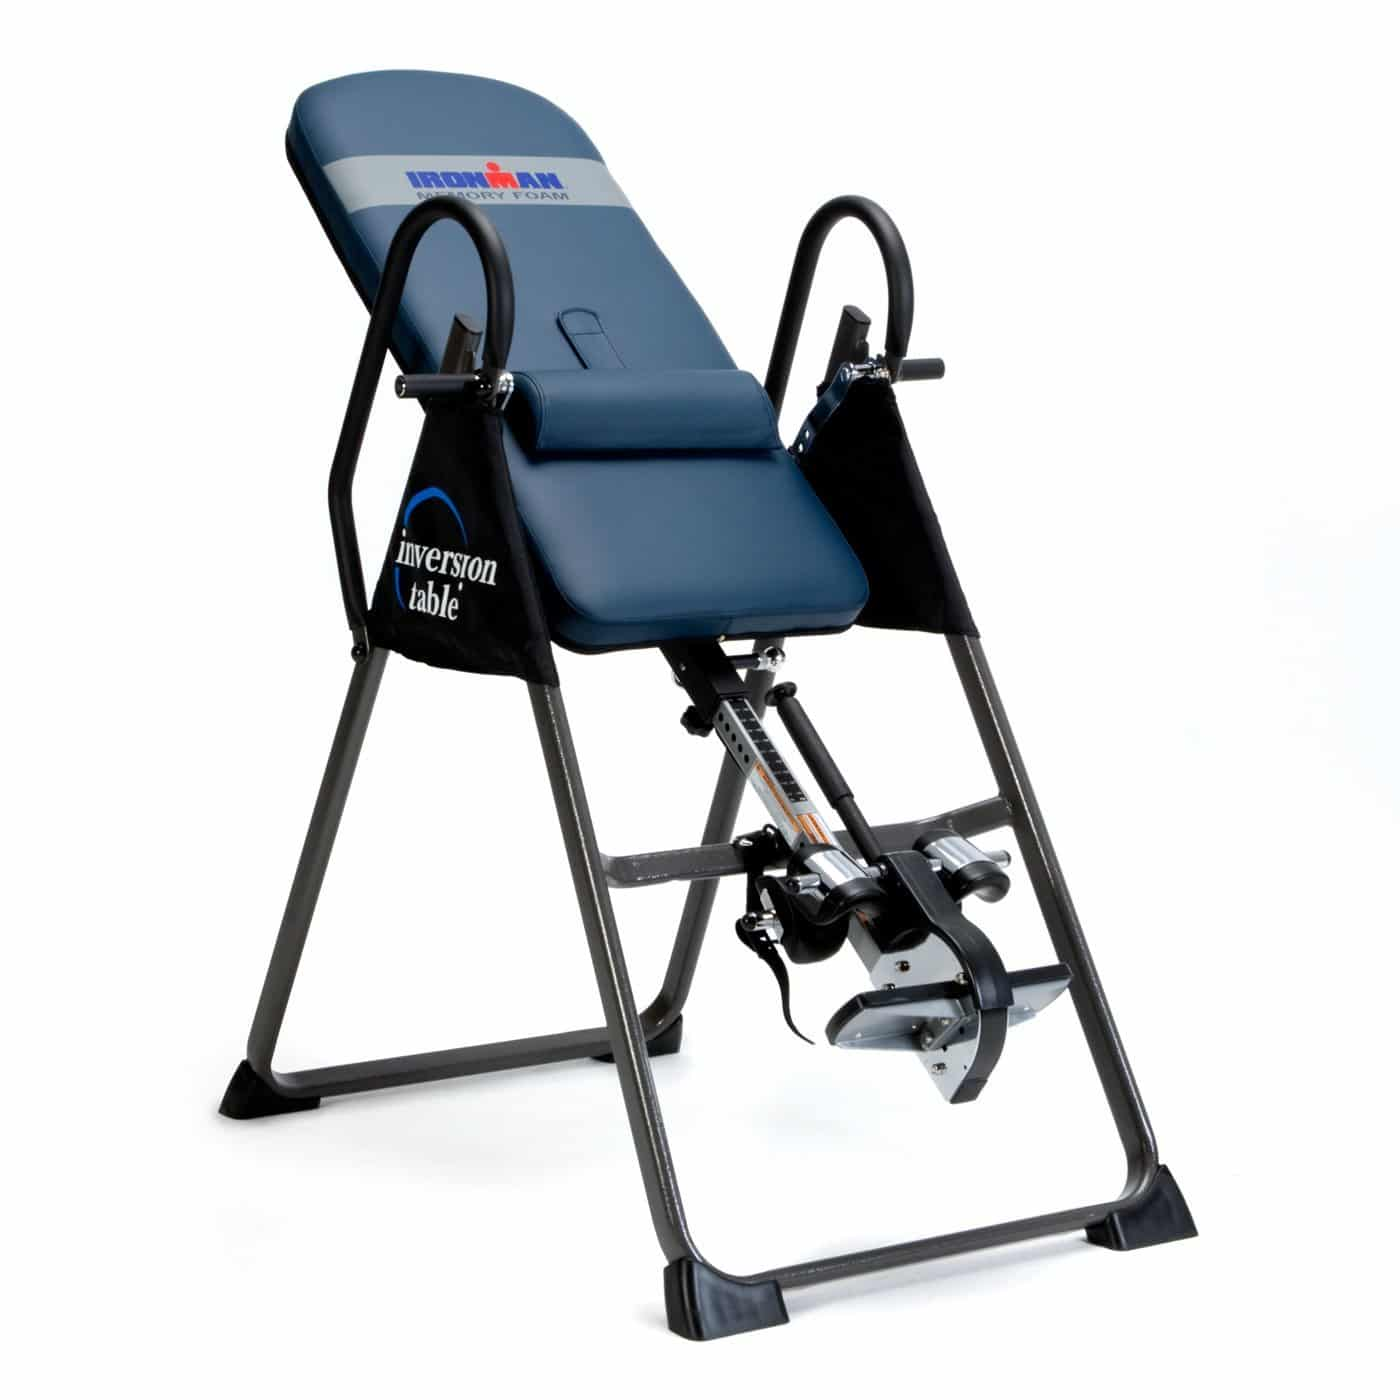 Ironman Gravity 4000 Inversion Table Warranty